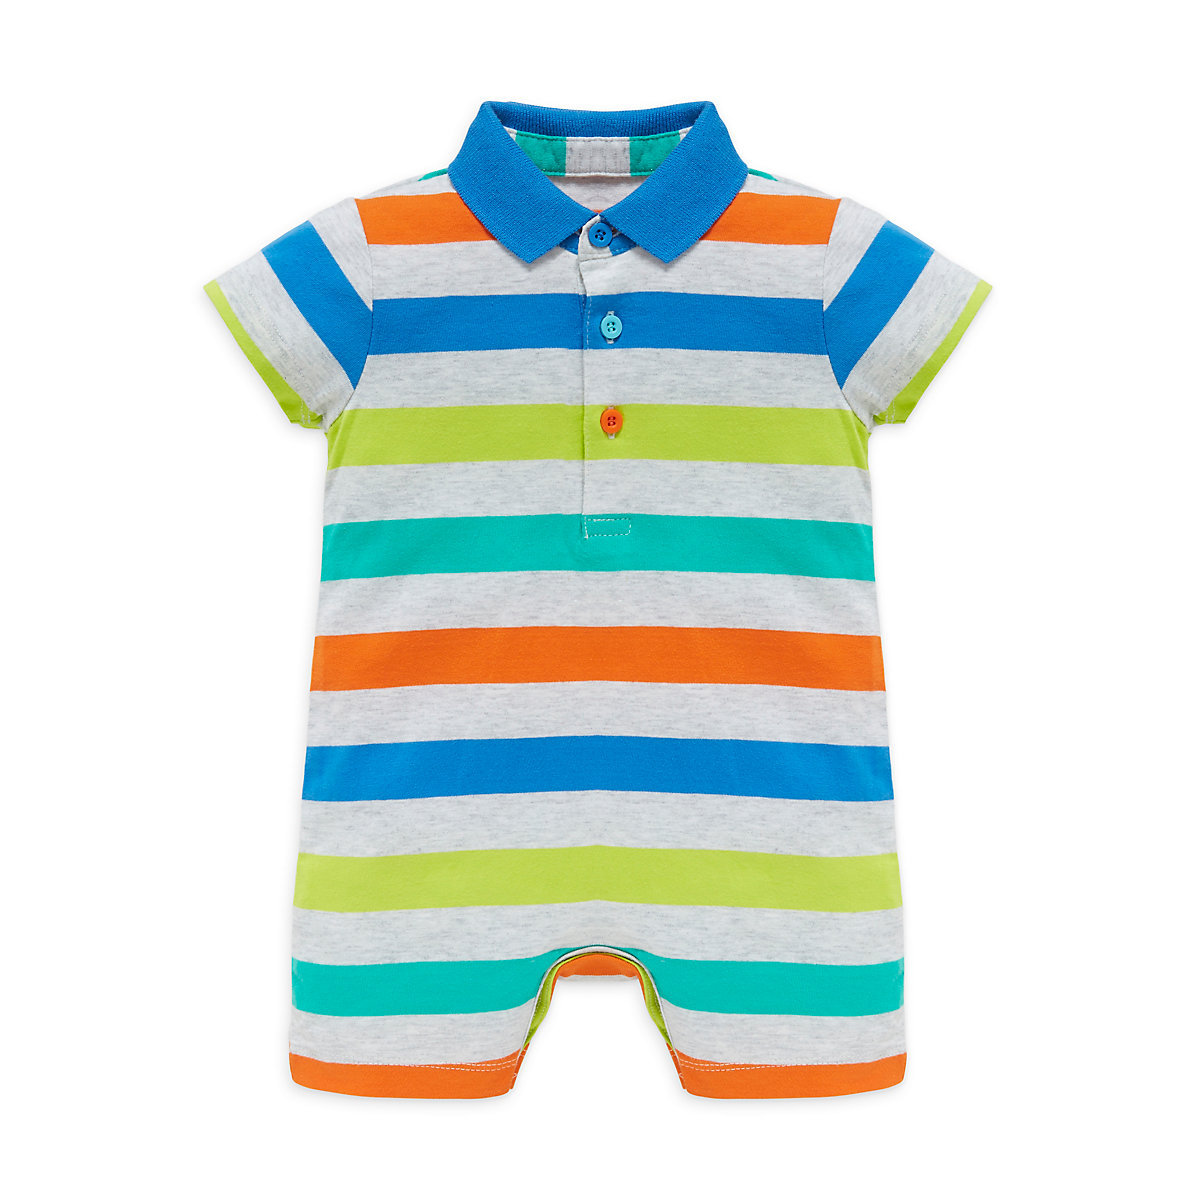 Discover a range of super adorable baby boy rompers in colours so appealing and prints so cute, you're sure to find the right pick for your boy. With slogans, animal prints, stripes and hues, style your baby in a snuggly romper suit or browse comfy shorts and trainers perfect for boys' seasonal style.